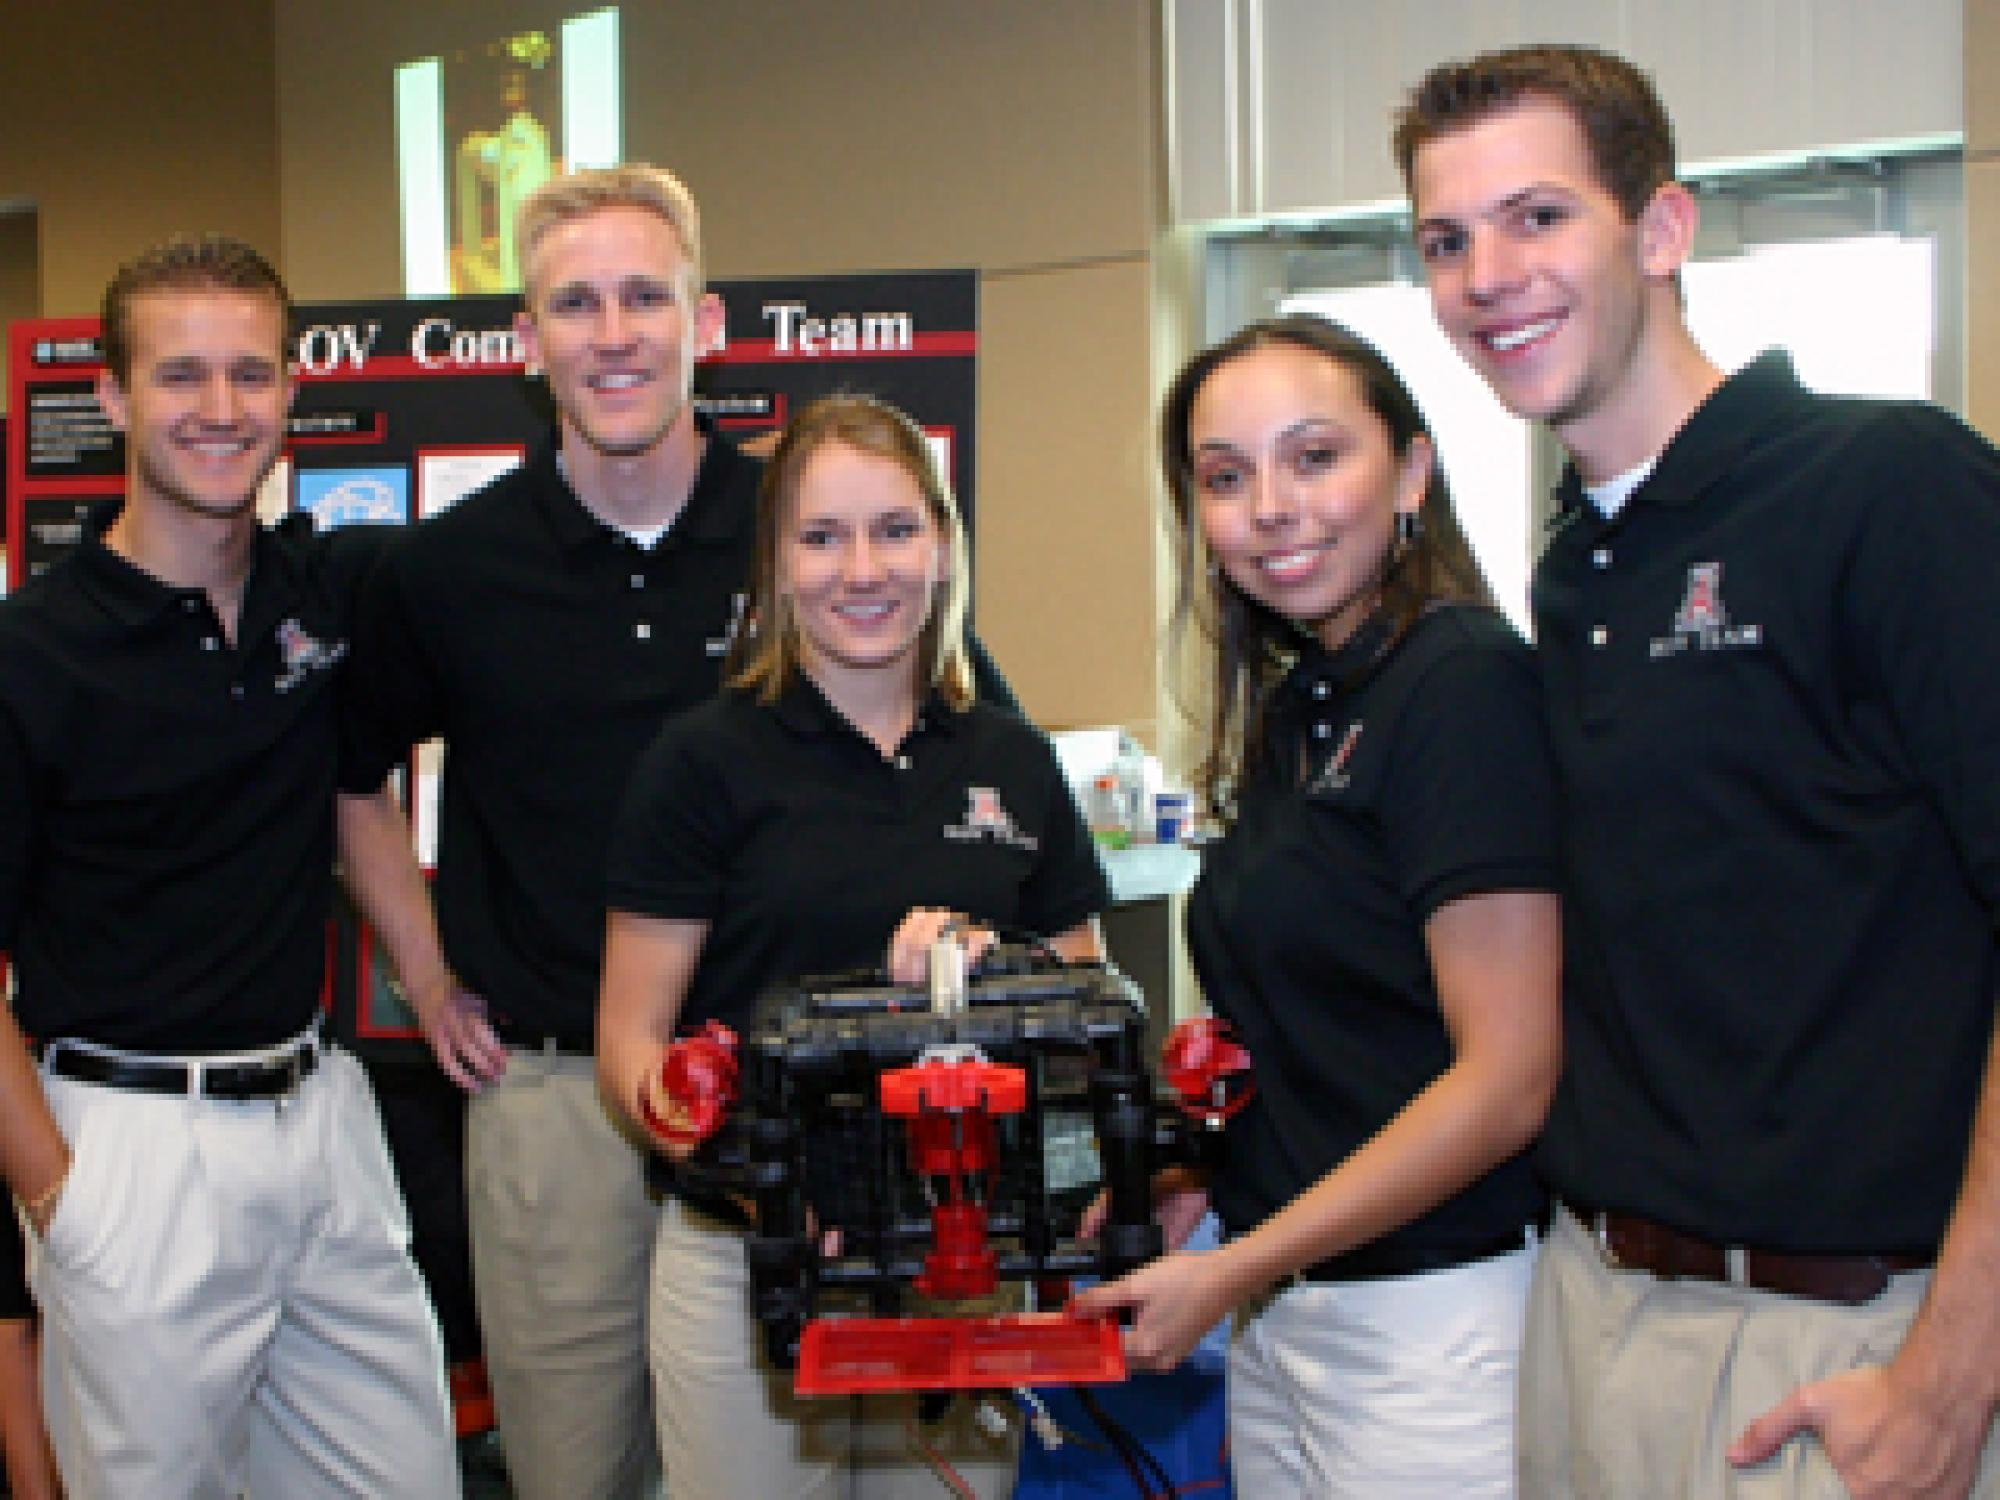 Five engineering seniors have built a remotely controlled submarine that's designed to take on hazardous missions. They will take the sub to a national competition for robotic submarines at UC Santa Barbara in June. The team members, all mechanical engine